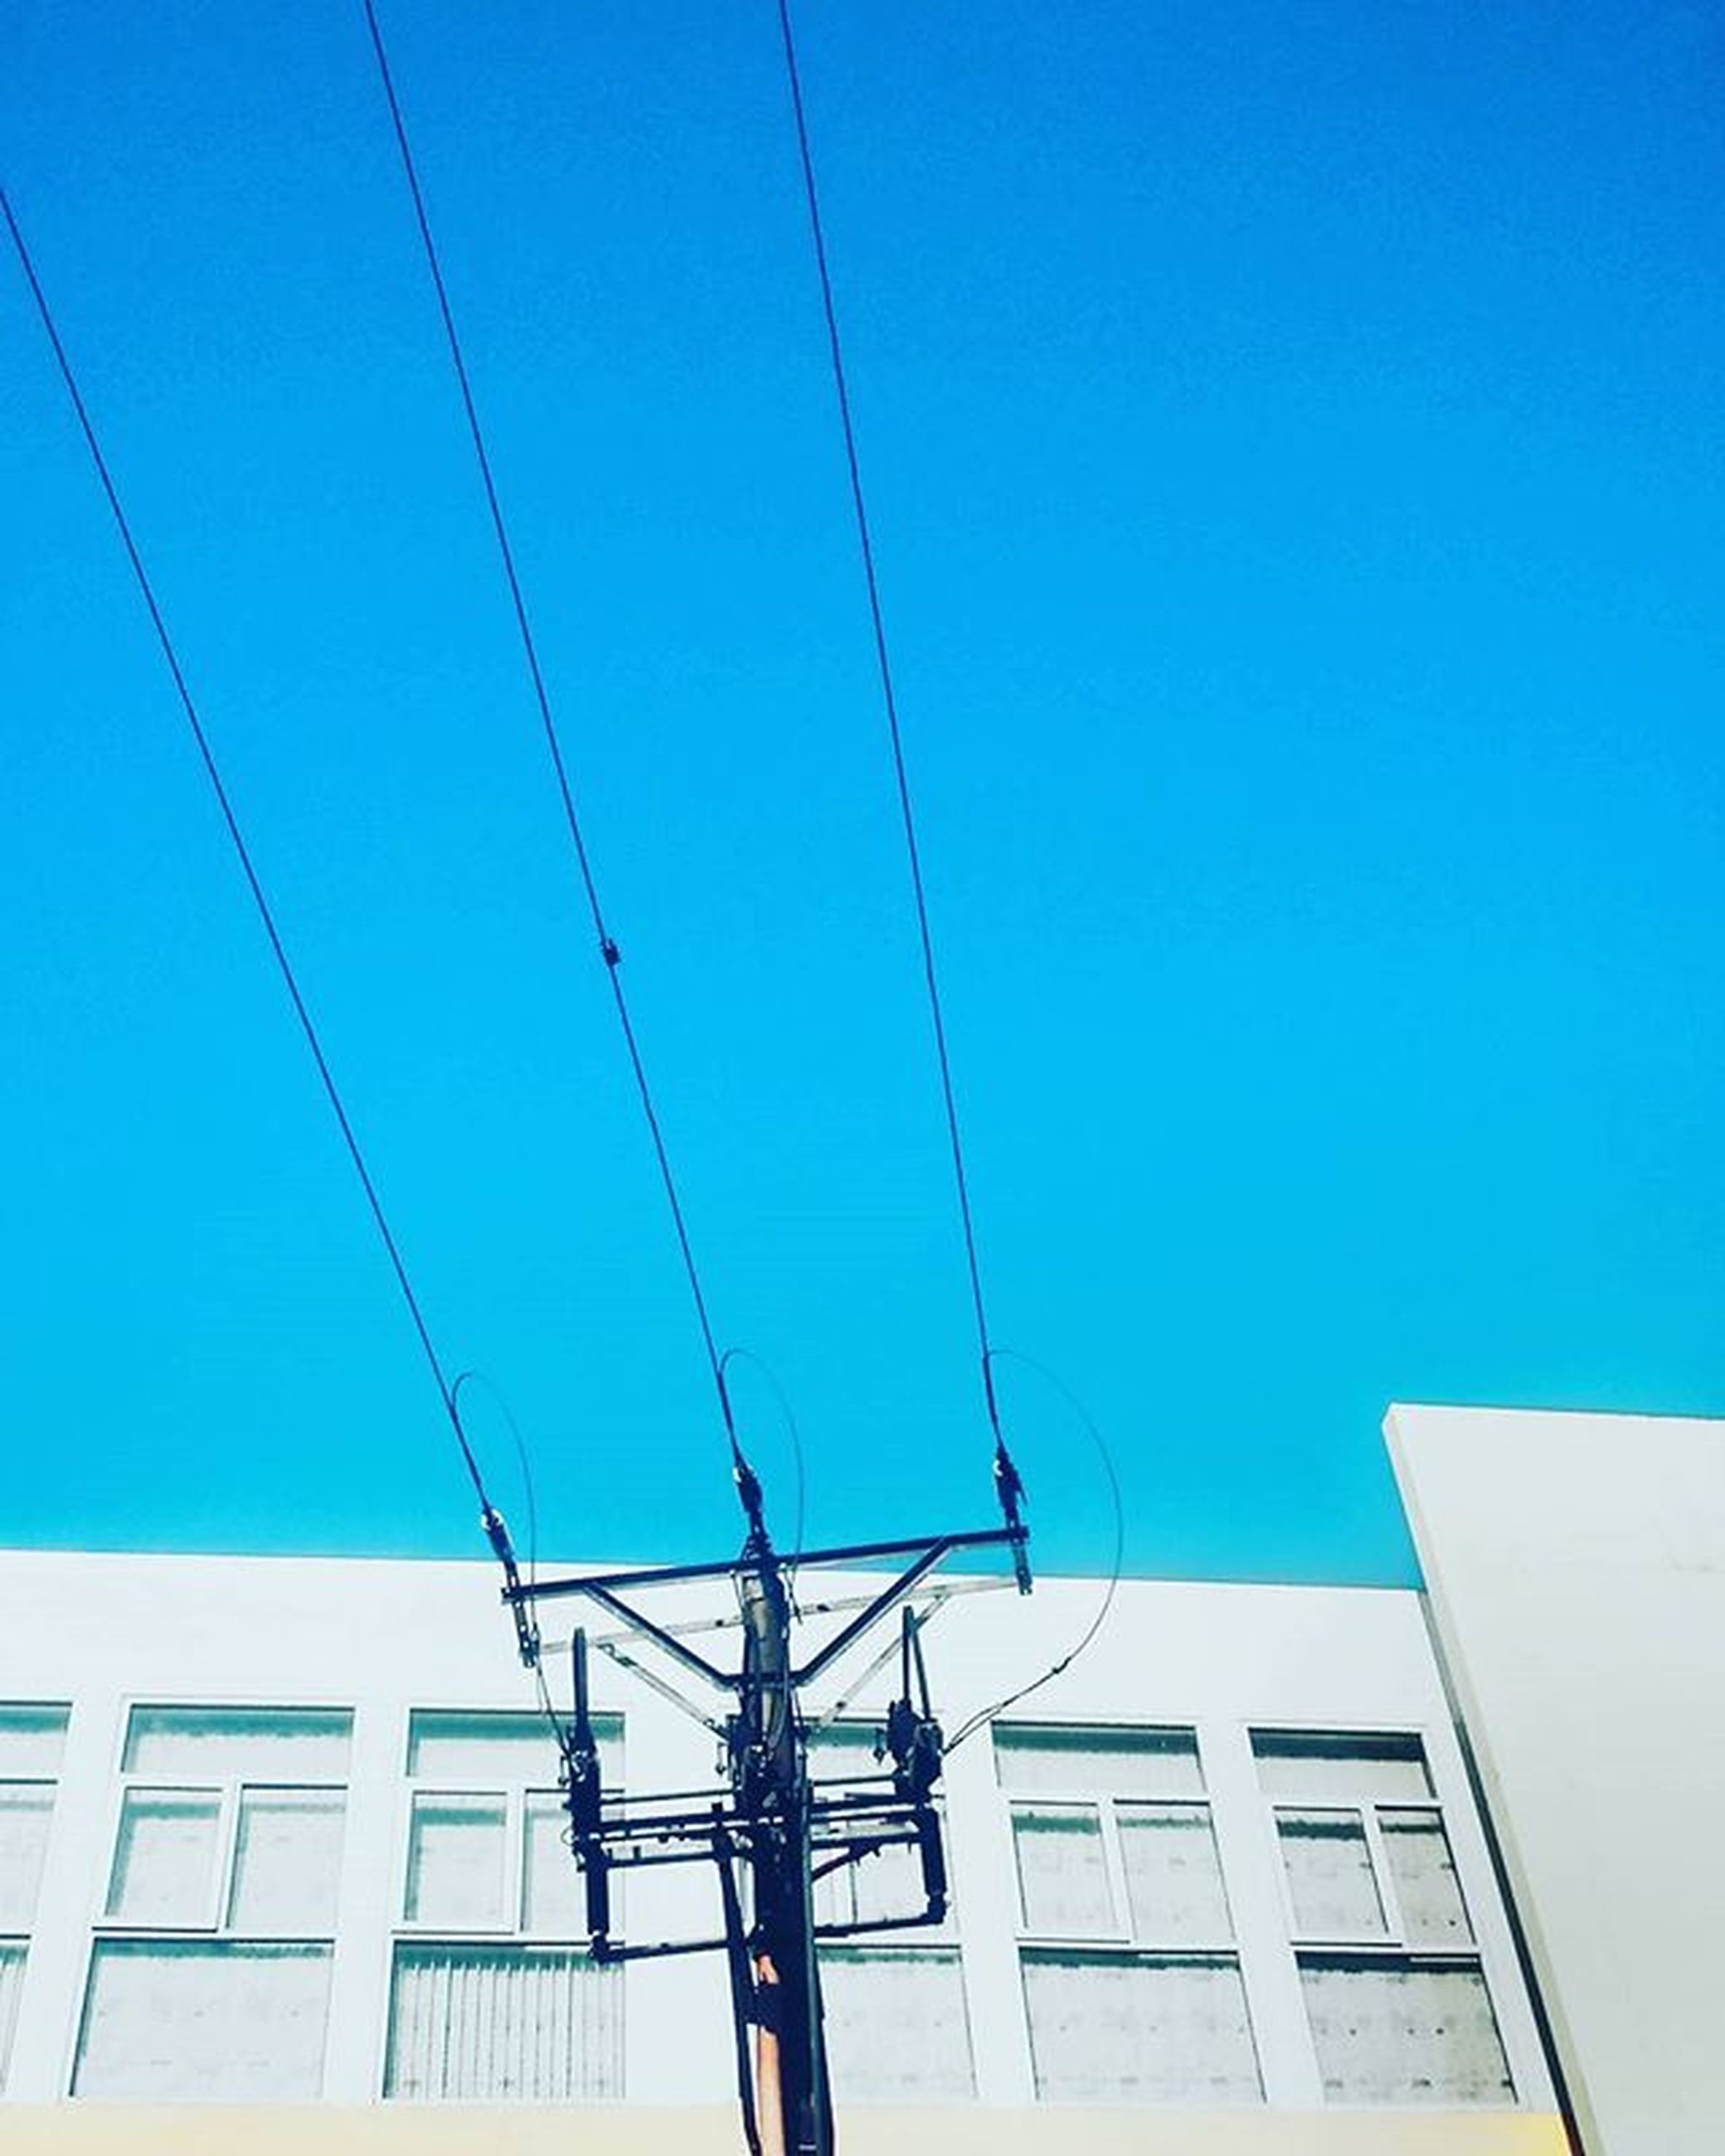 clear sky, blue, low angle view, built structure, architecture, building exterior, power line, cable, electricity, copy space, connection, power supply, day, technology, electricity pylon, building, sunlight, outdoors, fuel and power generation, no people